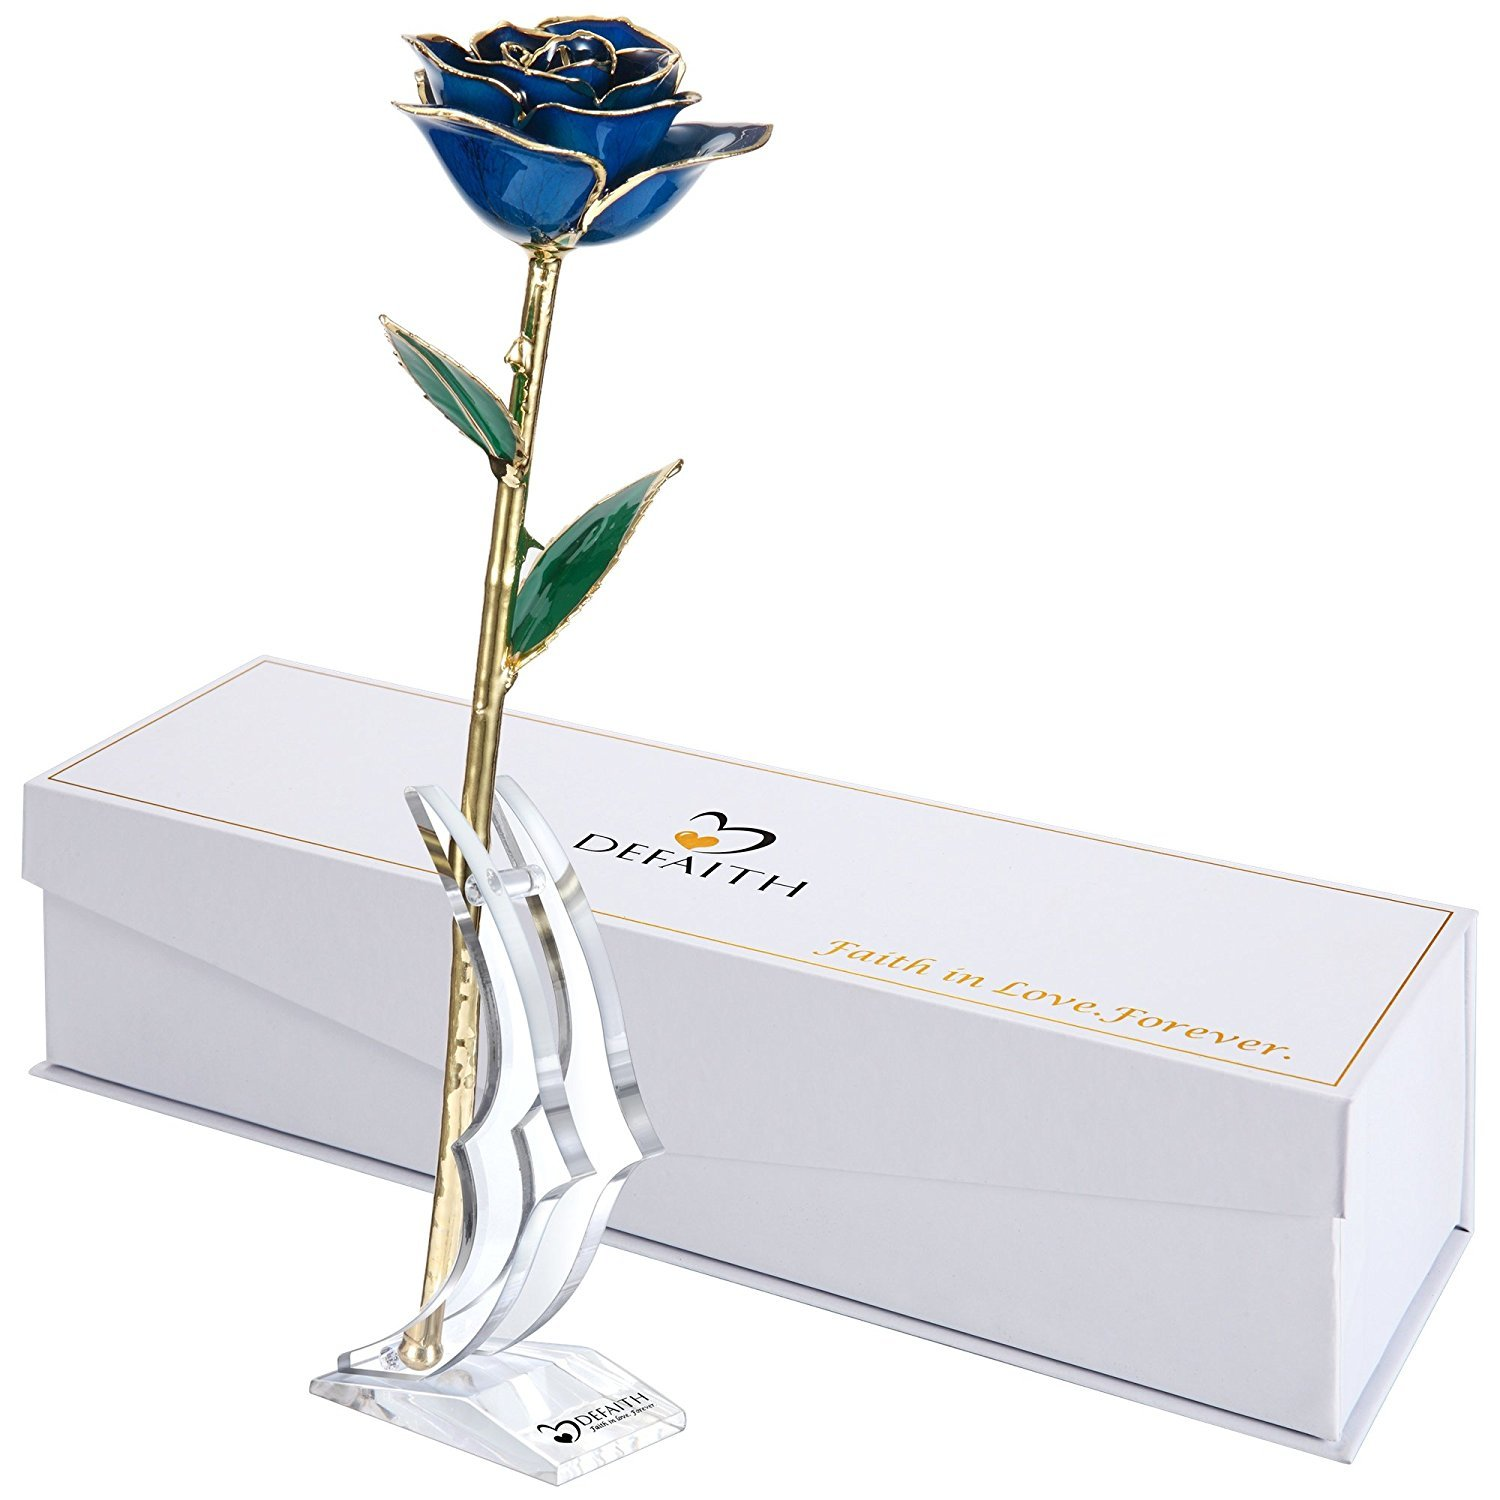 (I.blue) DEFAITH Blue 24K Gold Rose, Unique Anniversary Gifts for Mother Wife Girlfriend Her Women, Made from Real Rose Flower with Stand B014IZ42NI I.Blue